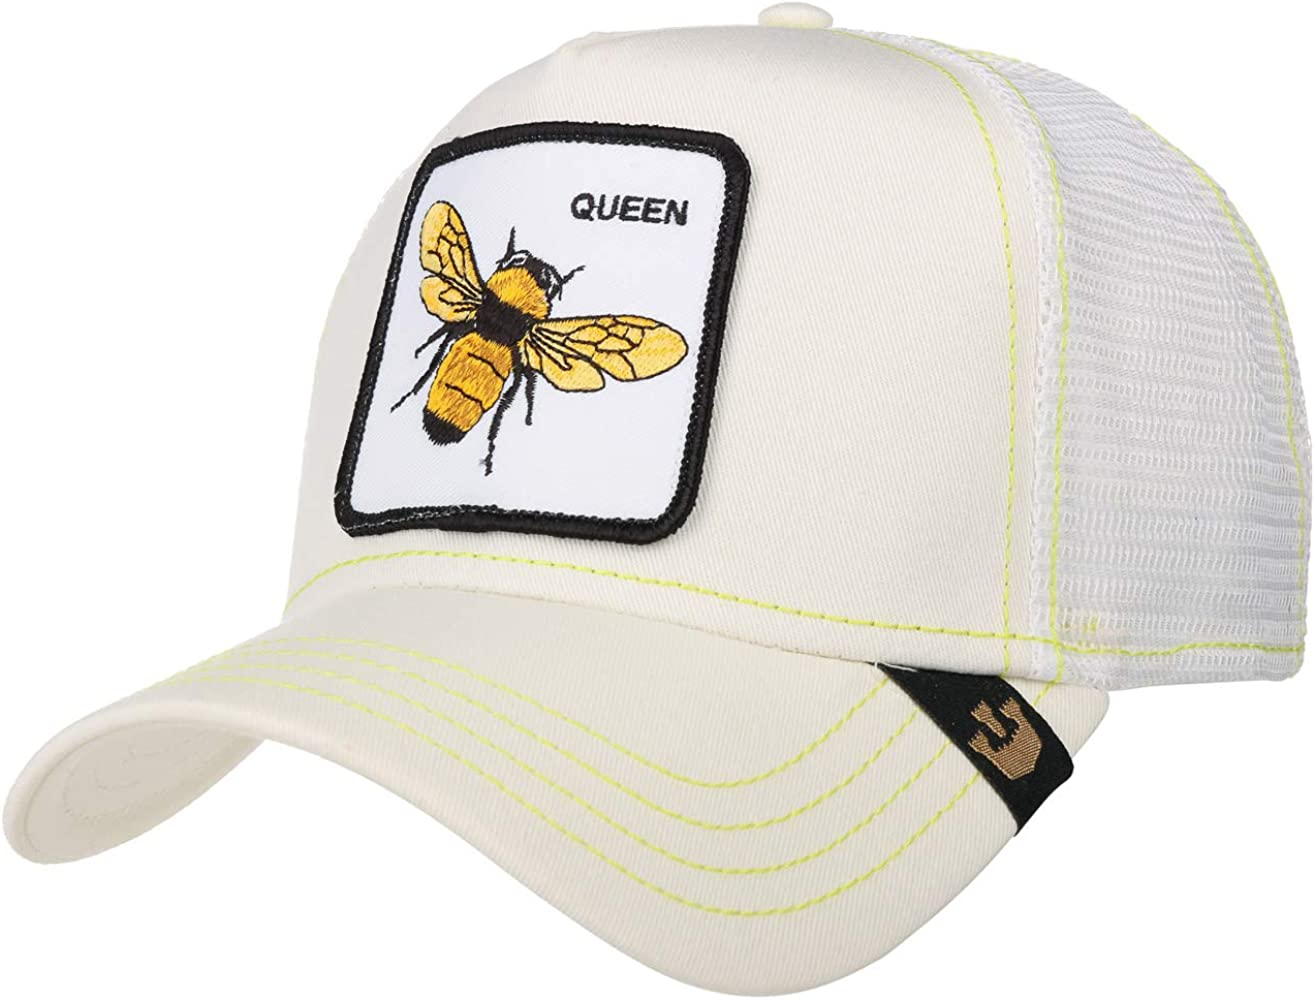 Goorin Bros Gorra Trucker Queen Bee by mallagorra Camionero (Talla ...